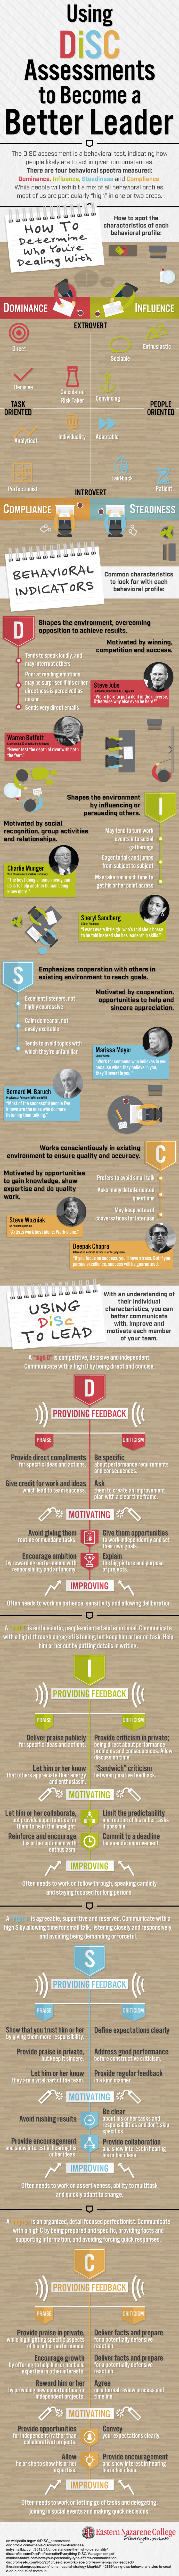 Become A Better Business Leader [Infographic]